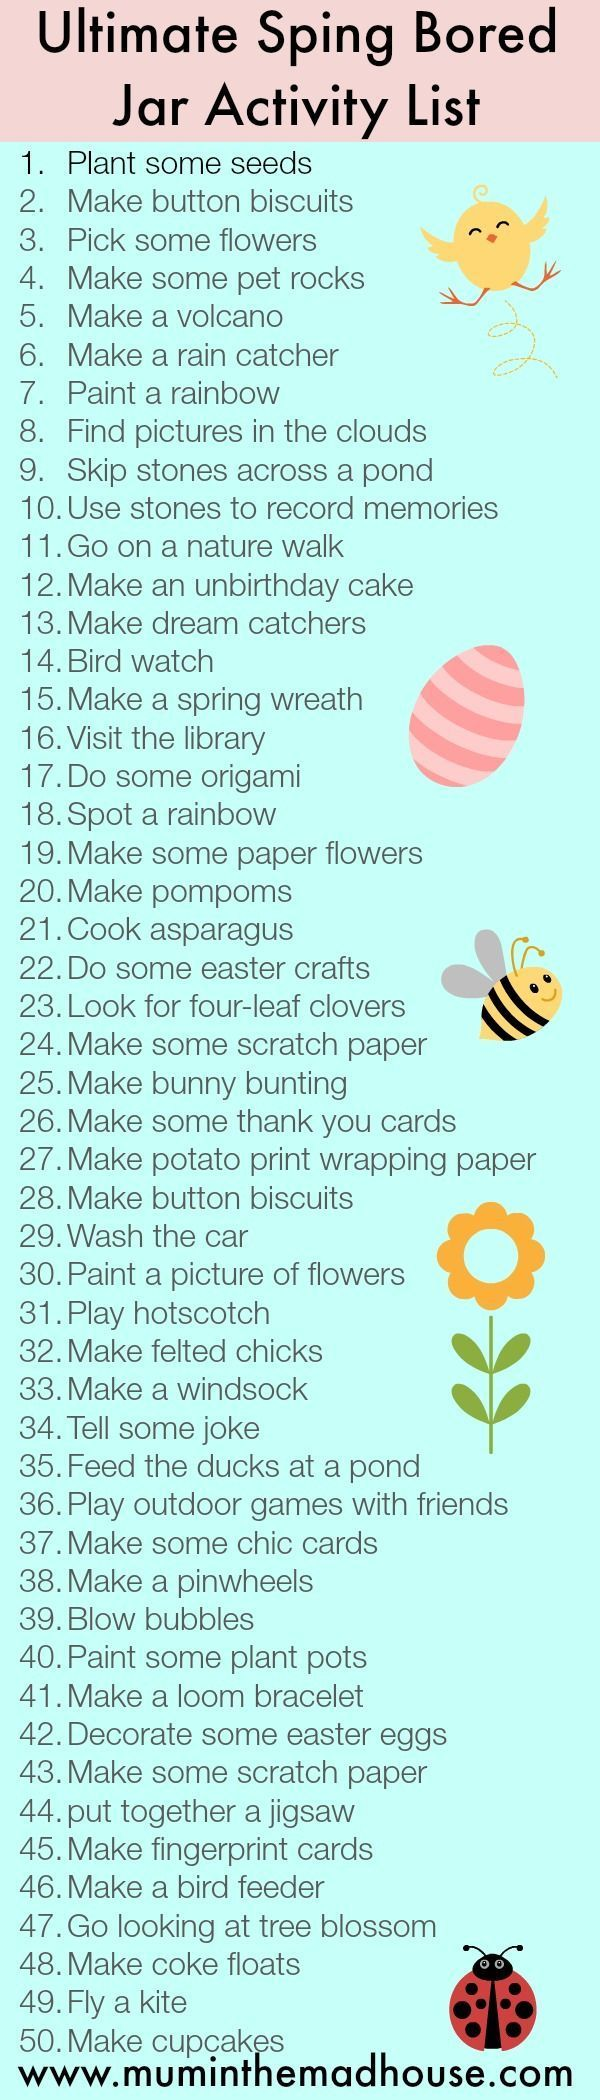 Ultimate Spring Bored Jar Activity list via The Mad House fab low cost or no cost kids activities